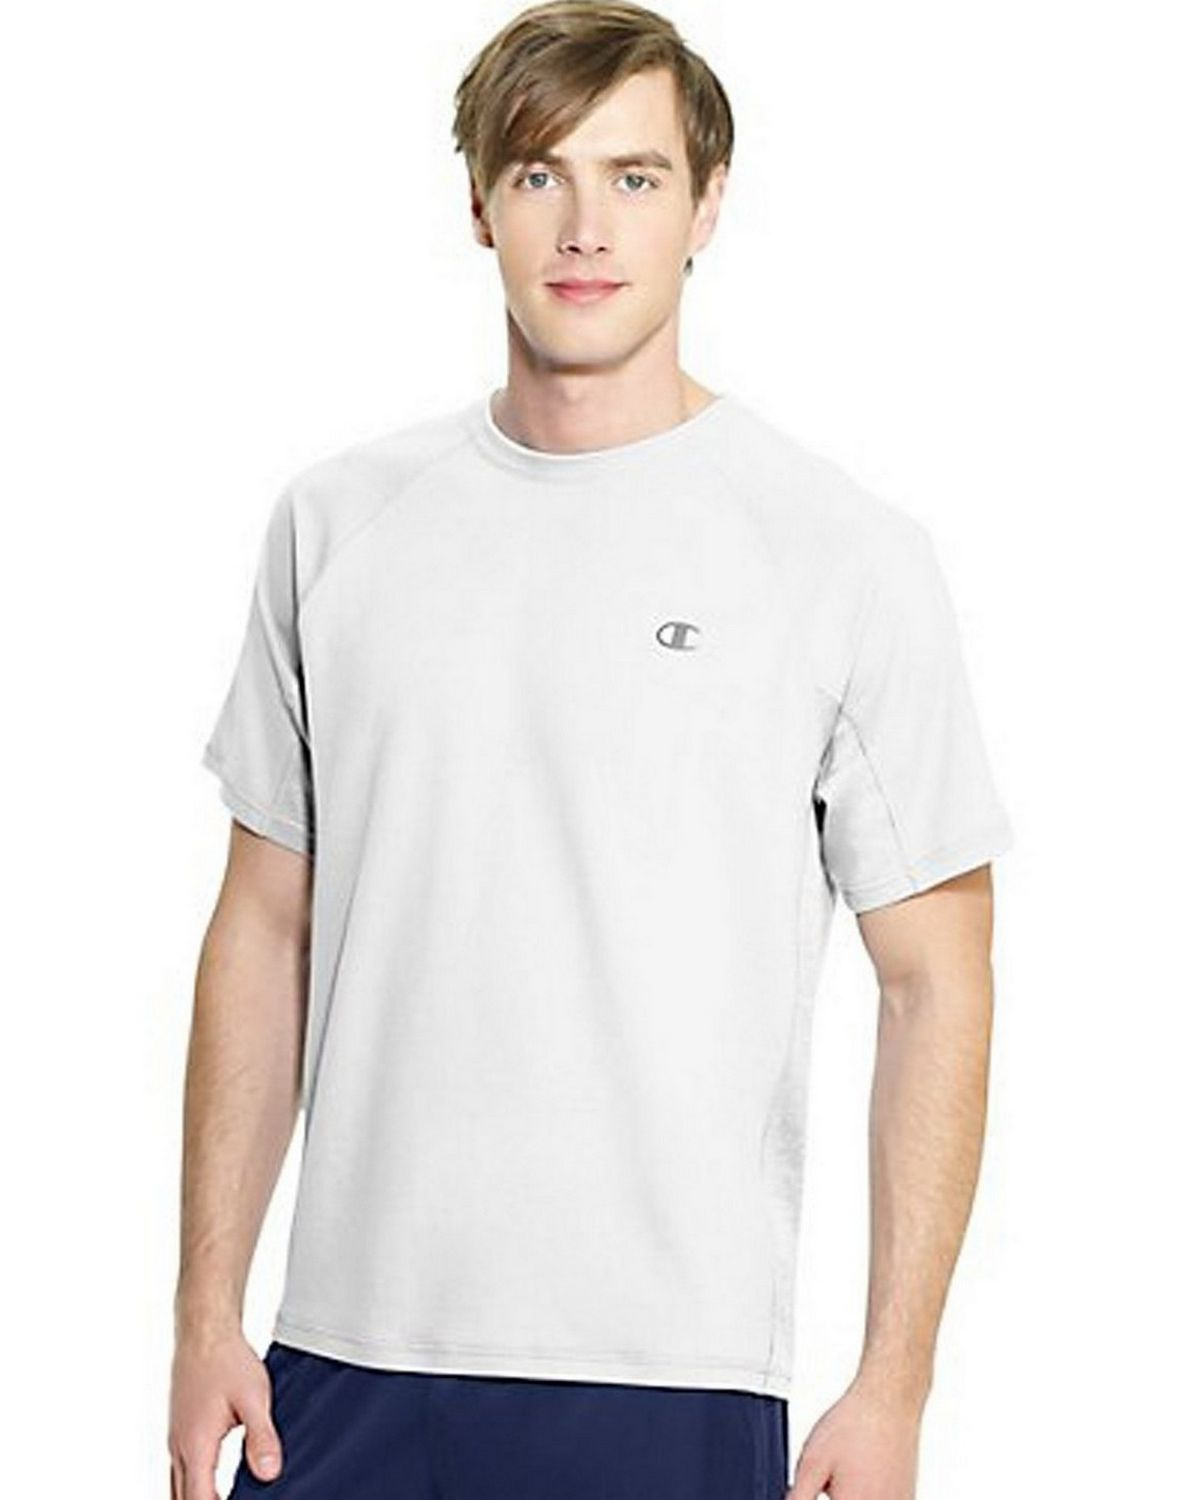 Champion T6608 Vapor PowerTrain Colorblock Tee - White - M T6608